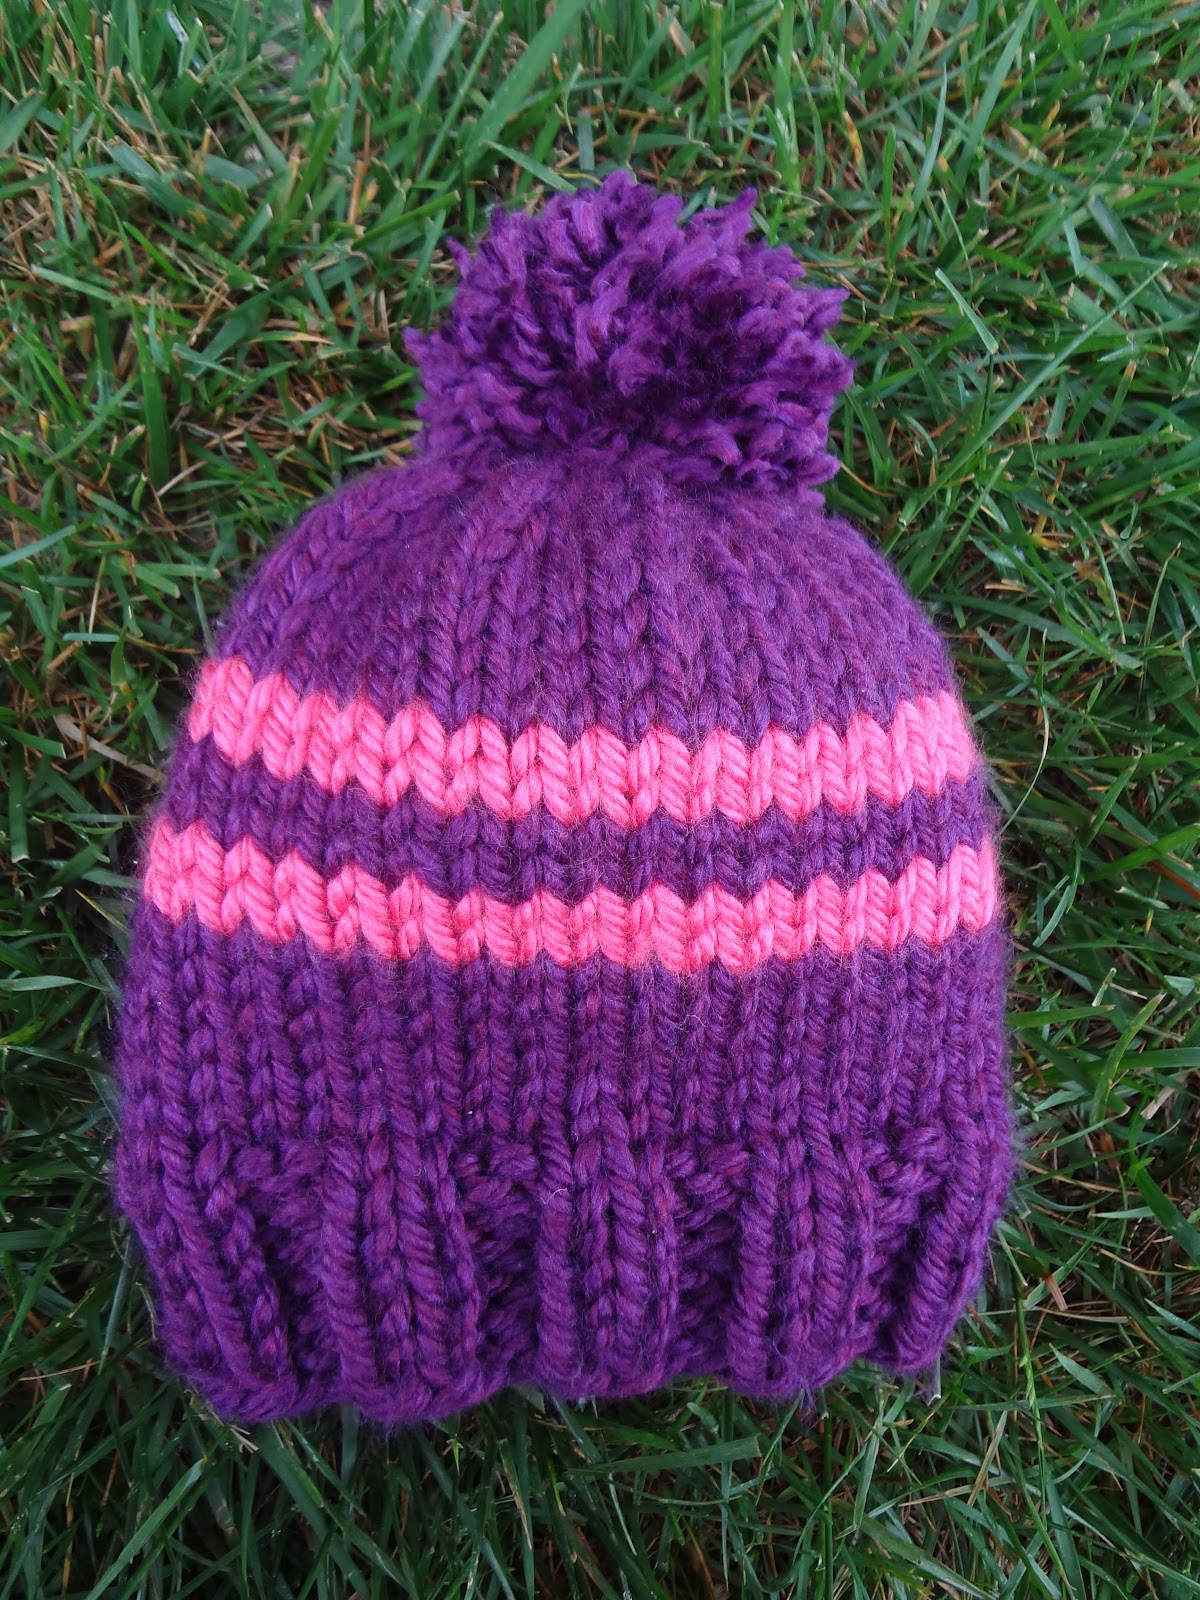 Knitting Patterns For Toddlers Beanies : Fiber Flux: Free Knitting Patterns